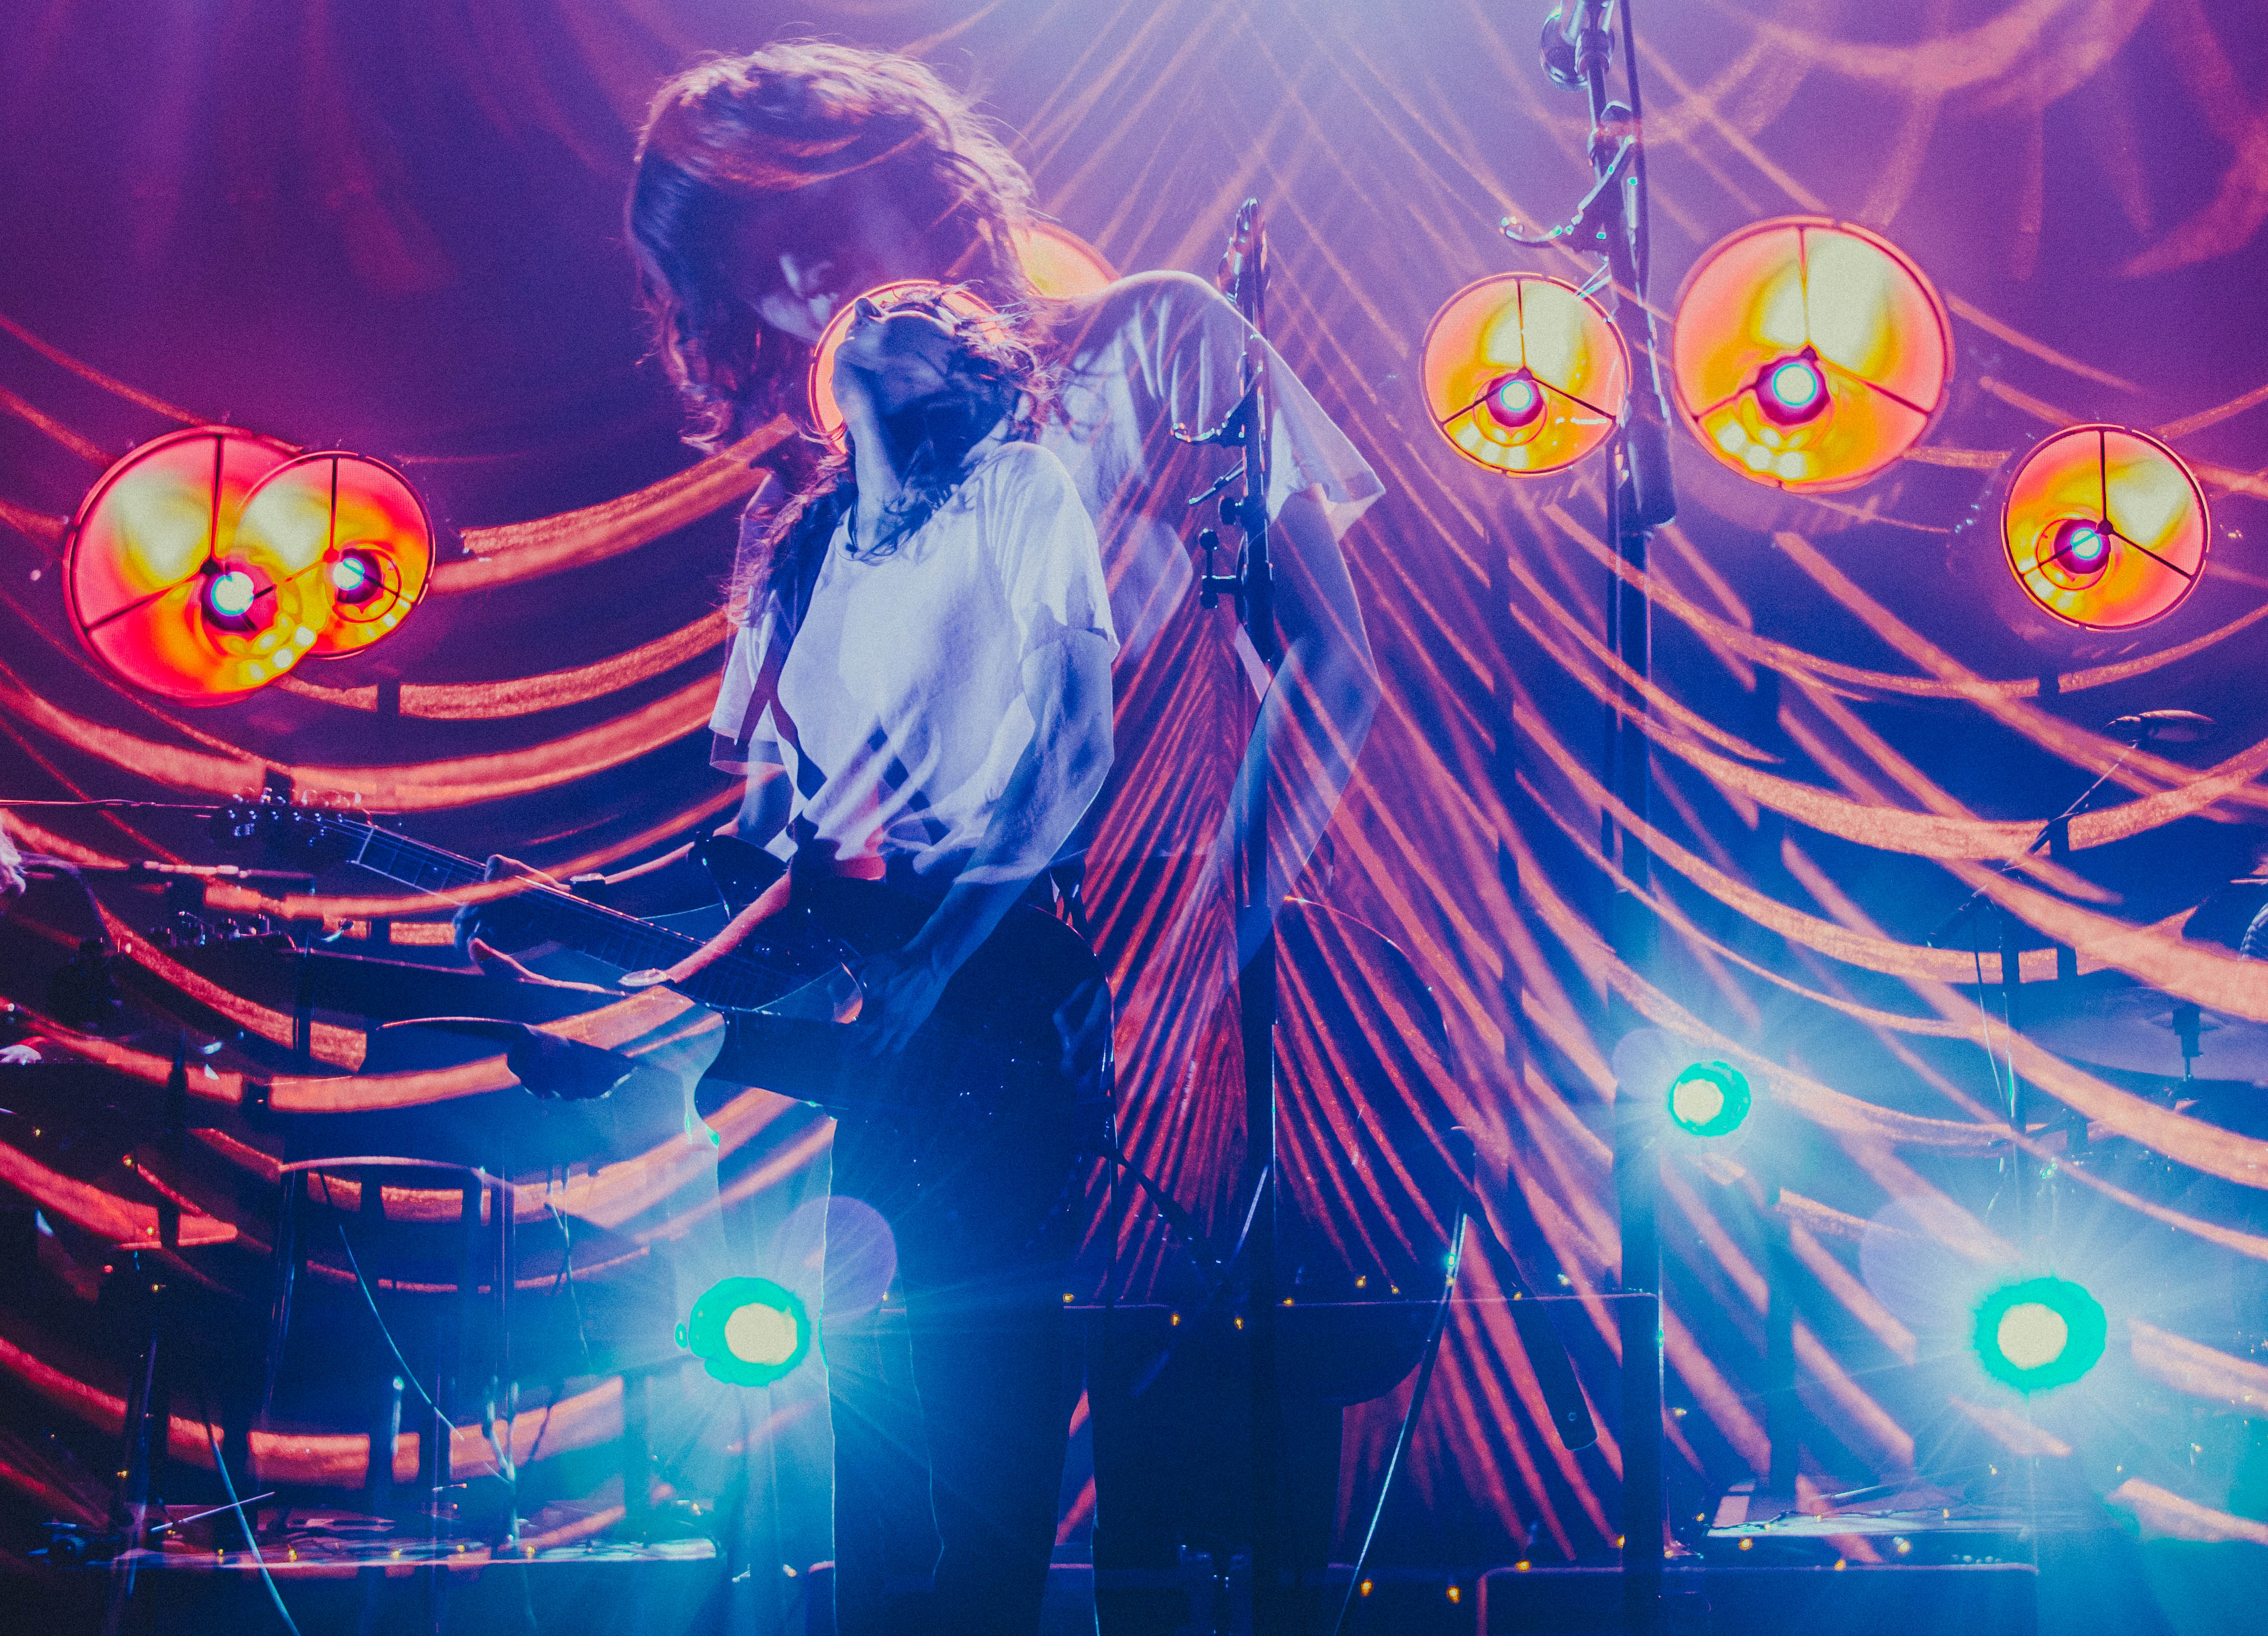 REVIEW: Courtney Barnett played a flawless set at The Riv